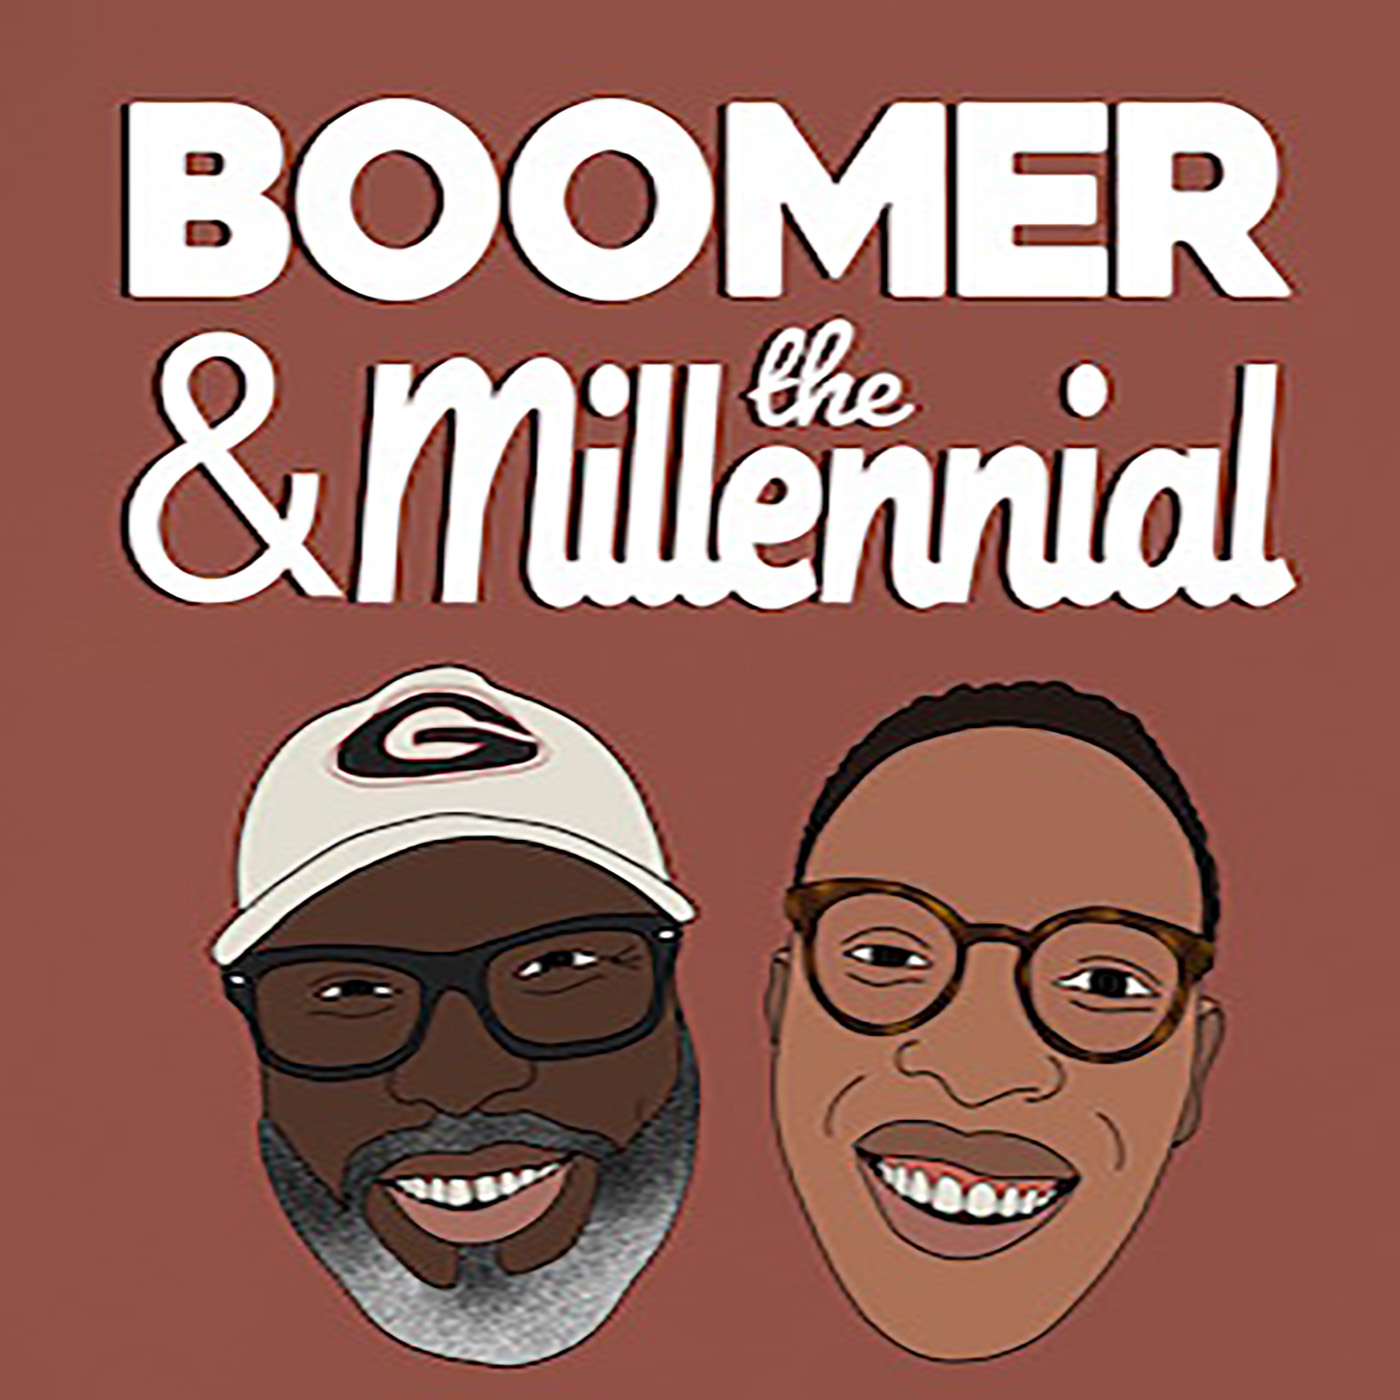 Boomer and the Millennial February Special - burst 01